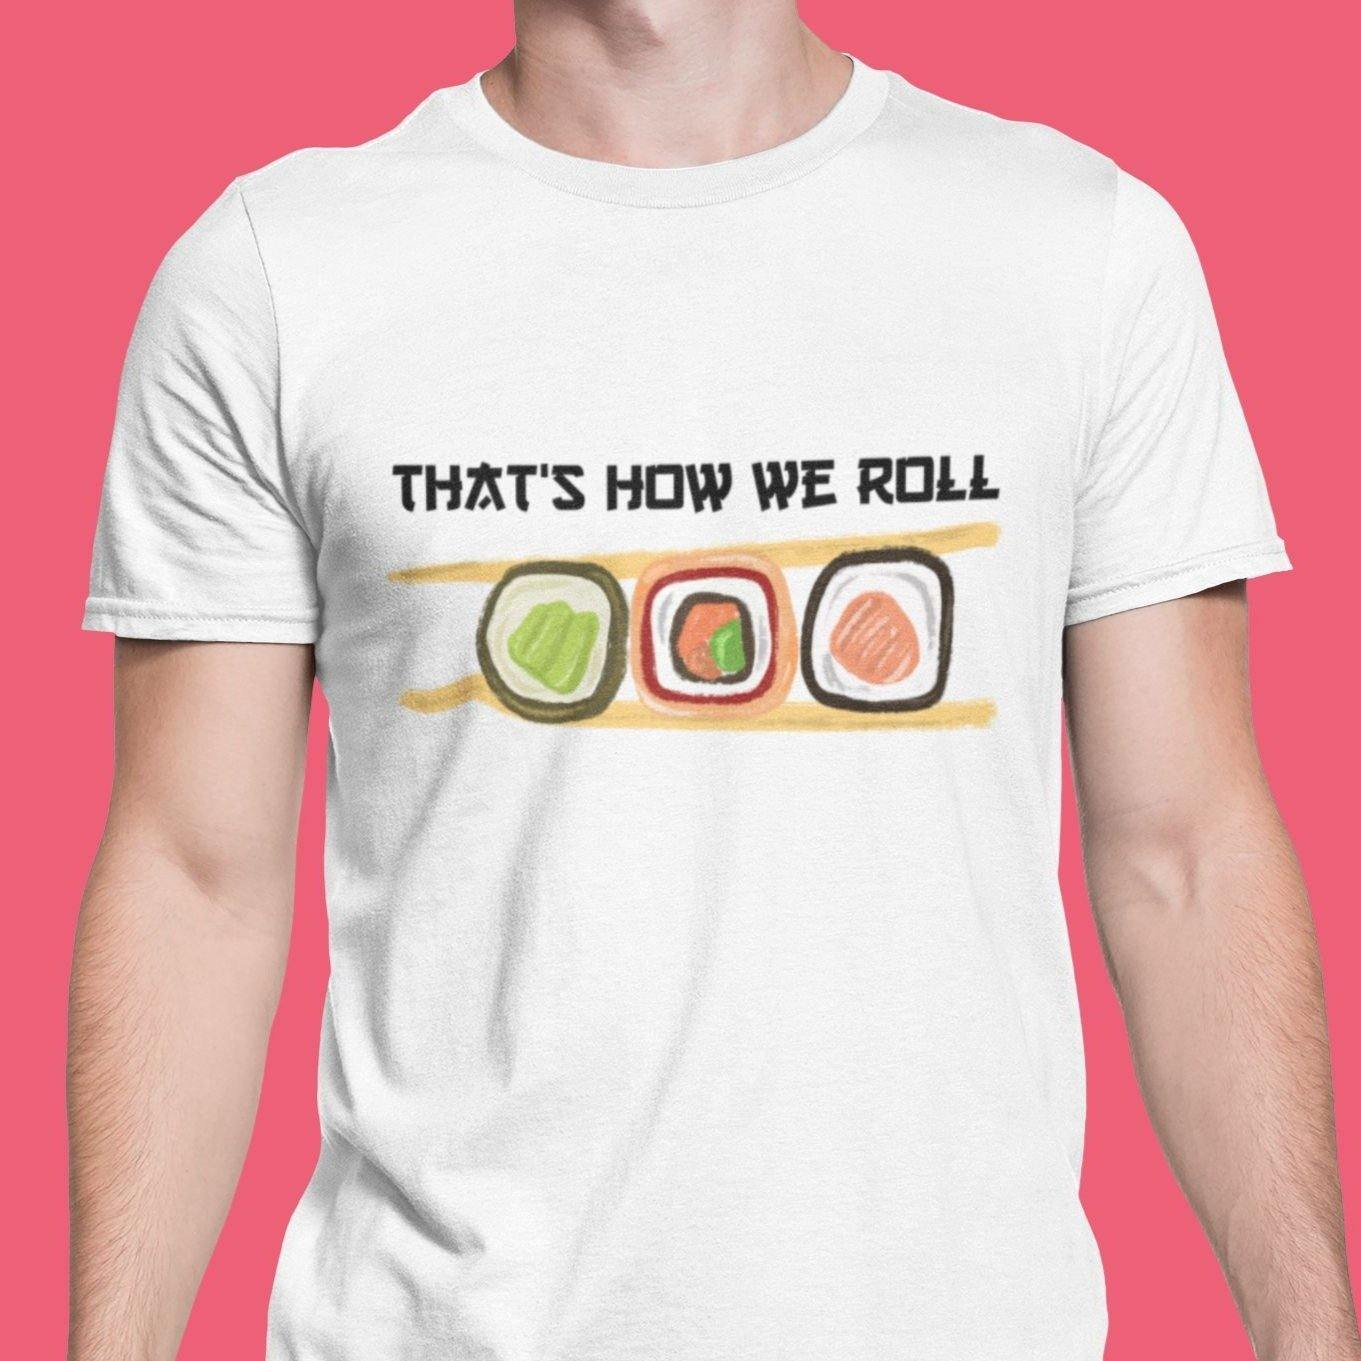 That's How We Roll - Men's Tshirt - Daily Suvichar Store